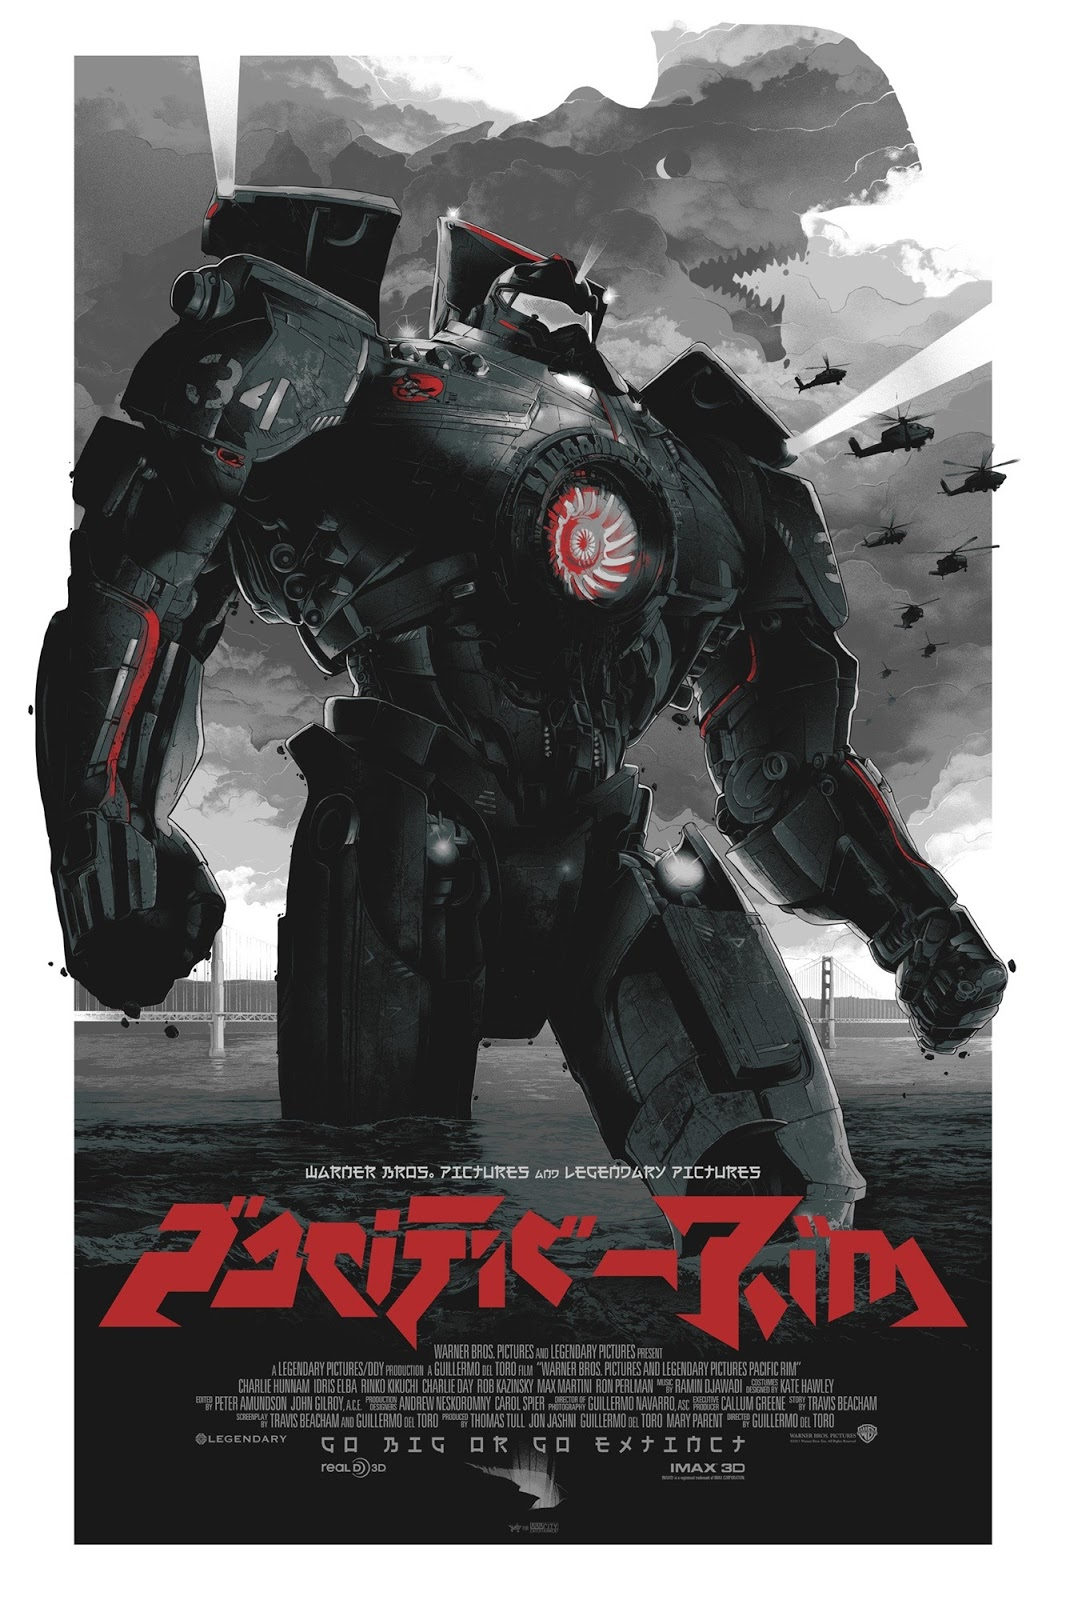 Poster of the Jaegers in Warner Bros. Pictures' Pacific Rim (2013)